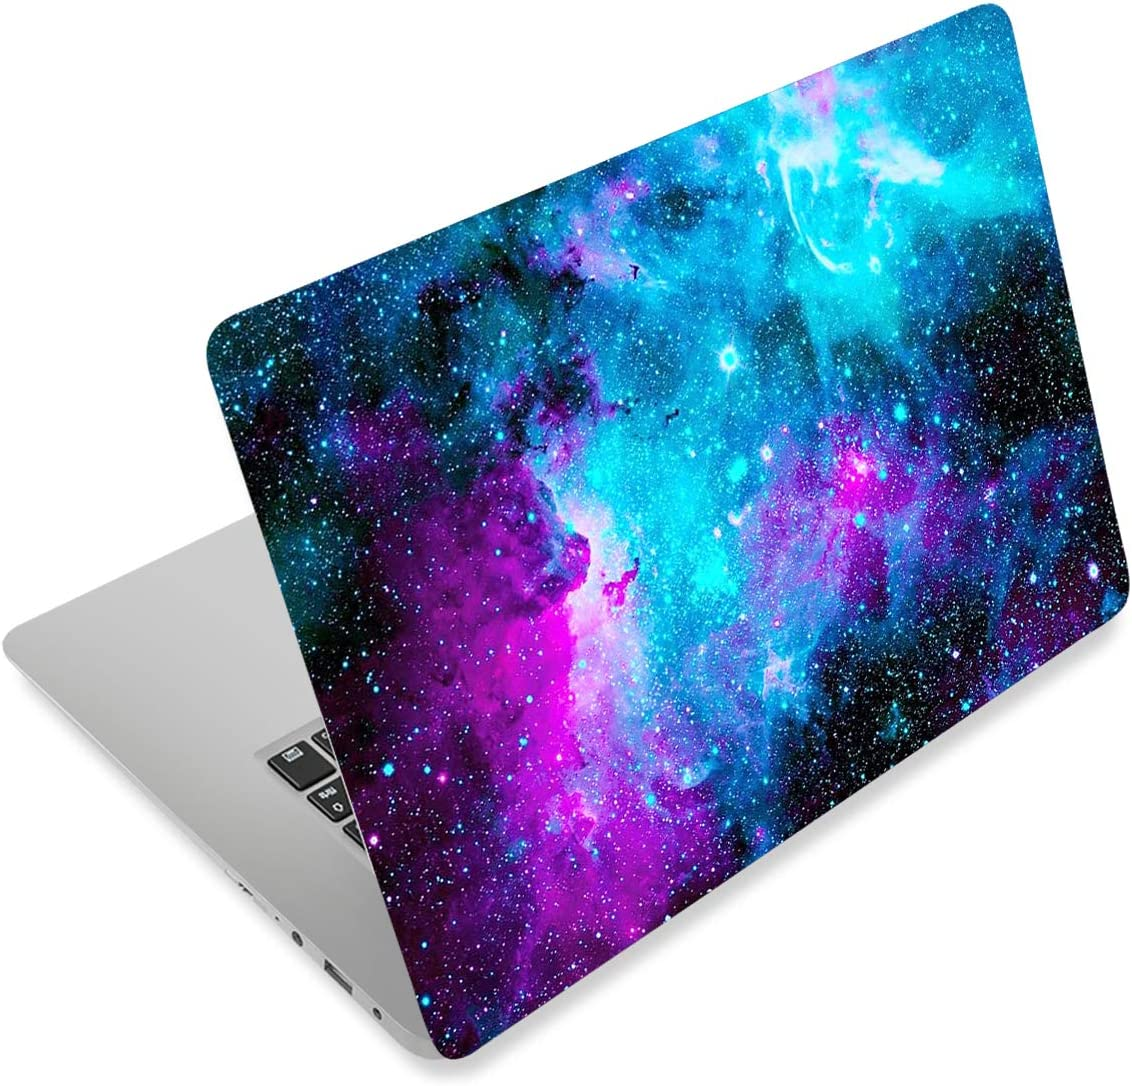 HYUTOTA Laptop Notebook Skin Sticker Cover Decal Fits 12 13 13.3 14 15 15.4 15.6 inch Laptop Protector Notebook PC | Easy to Apply, Remove and Change Styles (Galaxy)